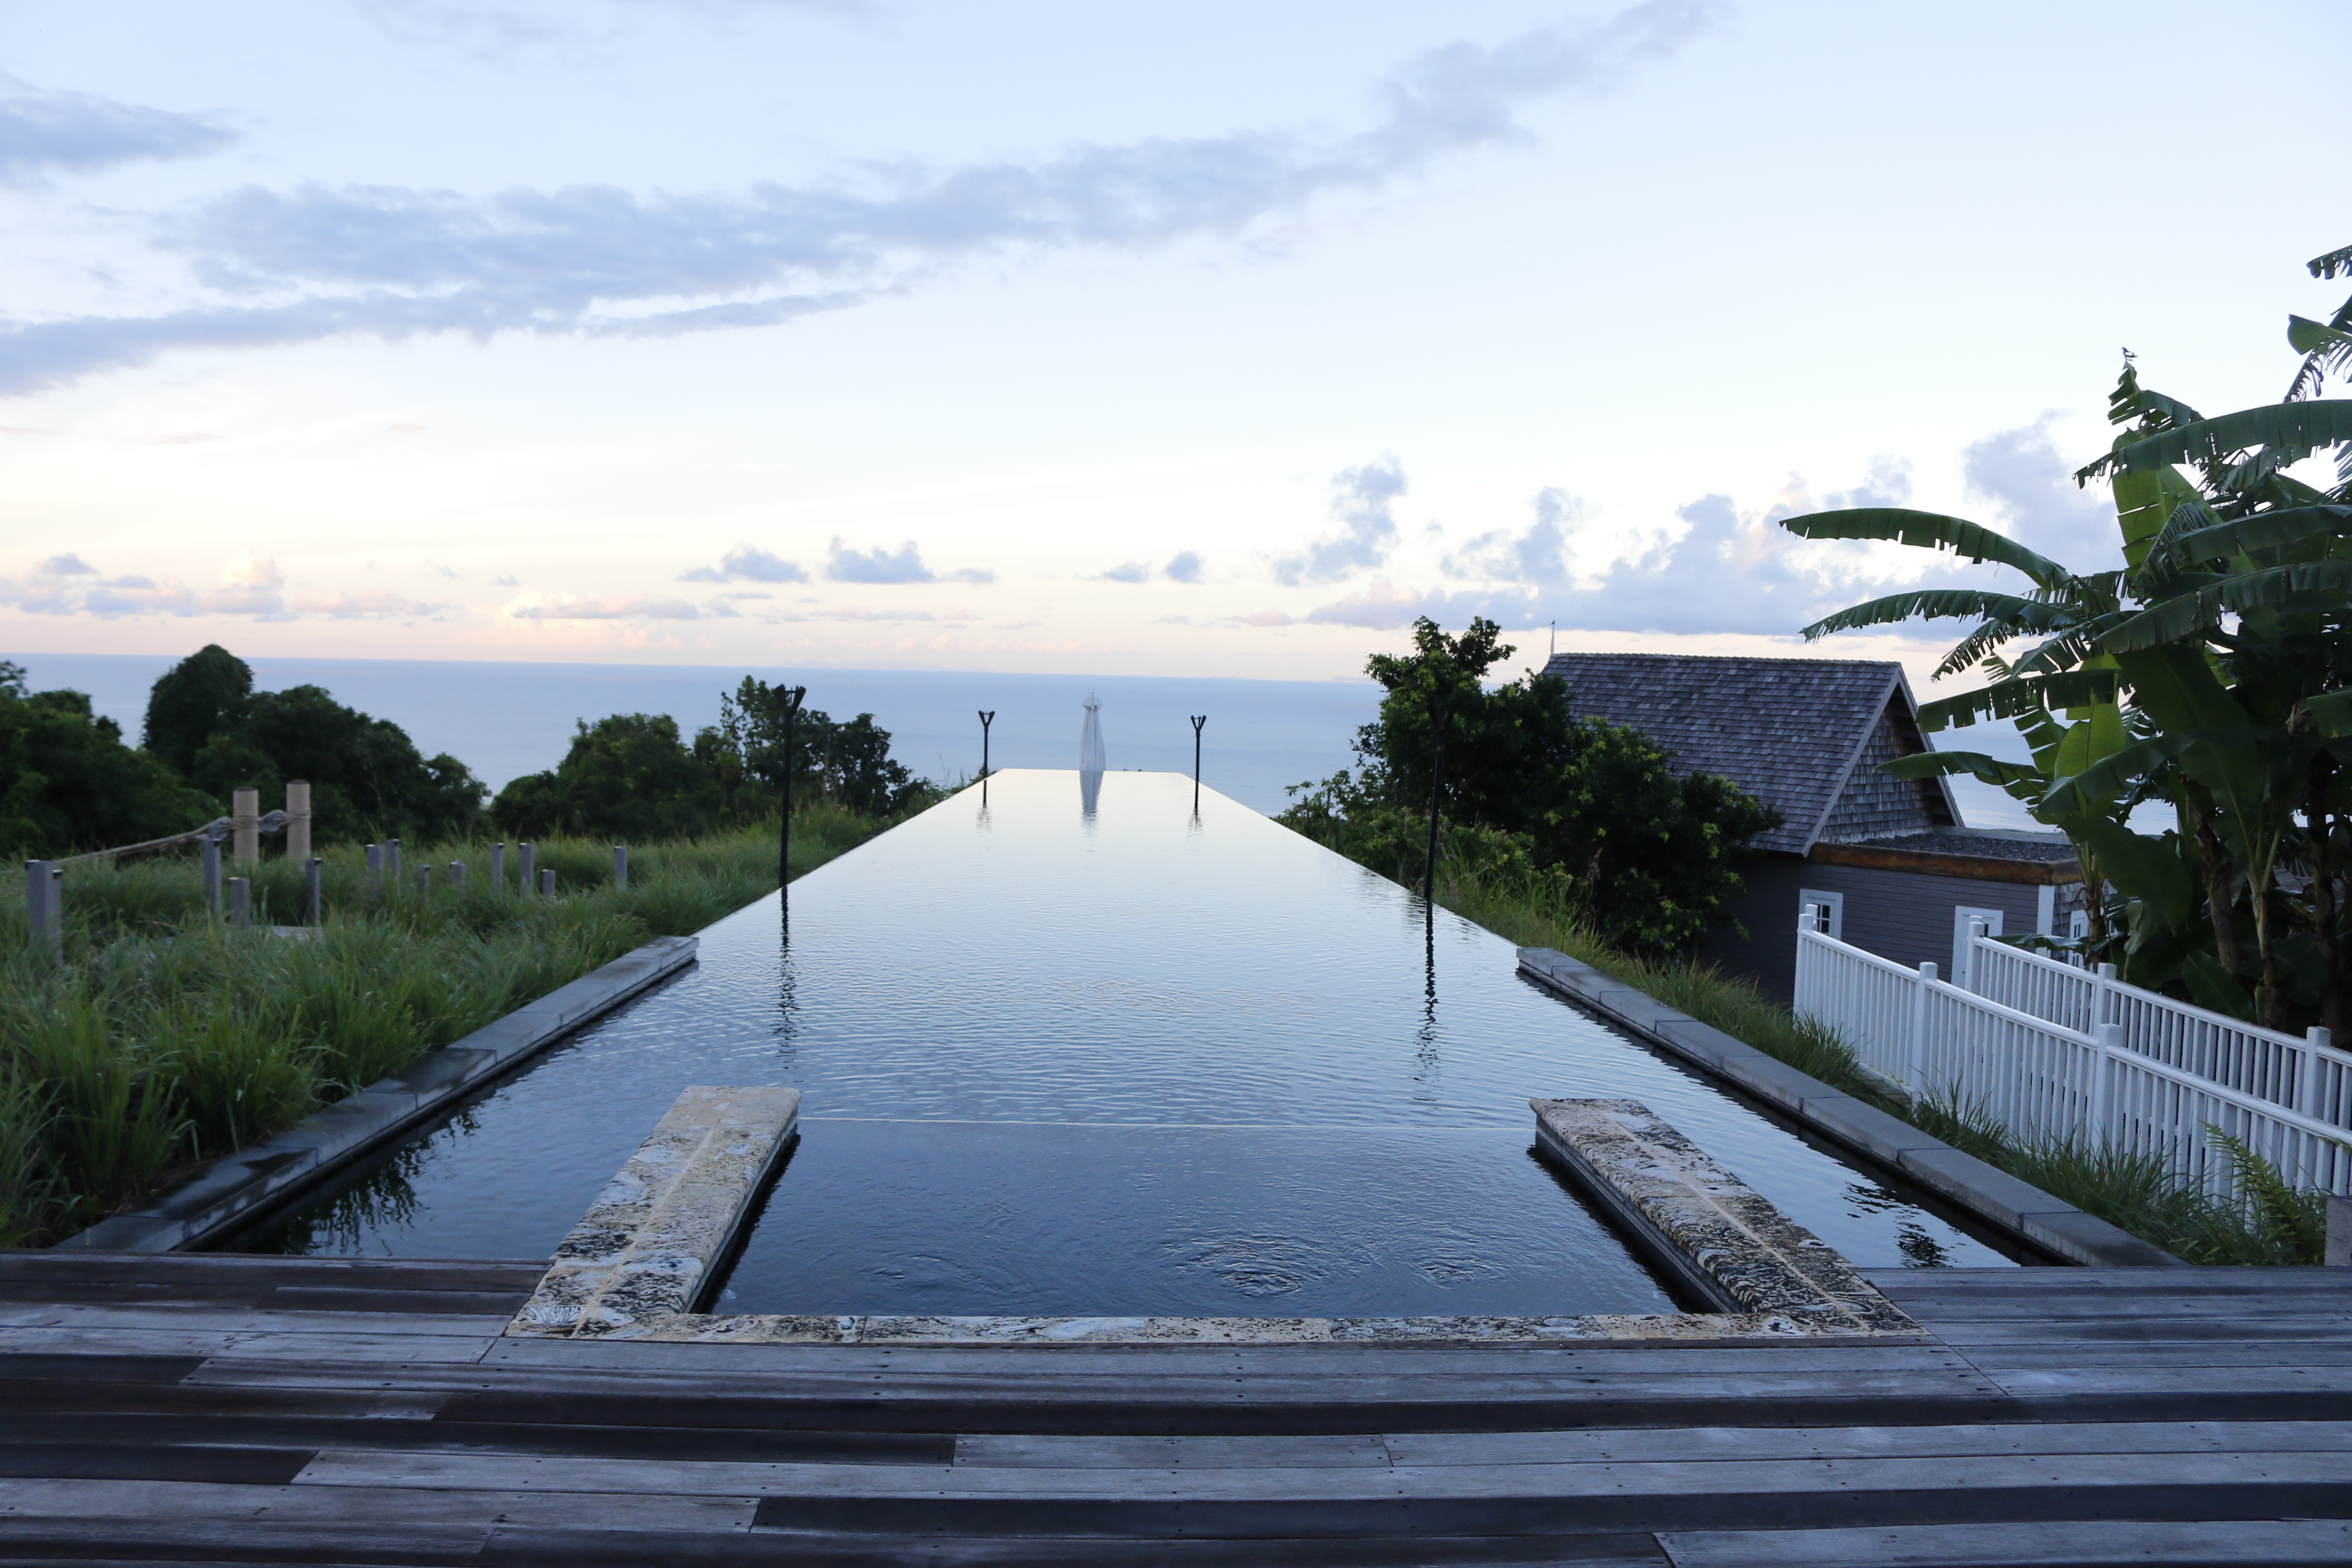 The infinity pool at The Farm House.